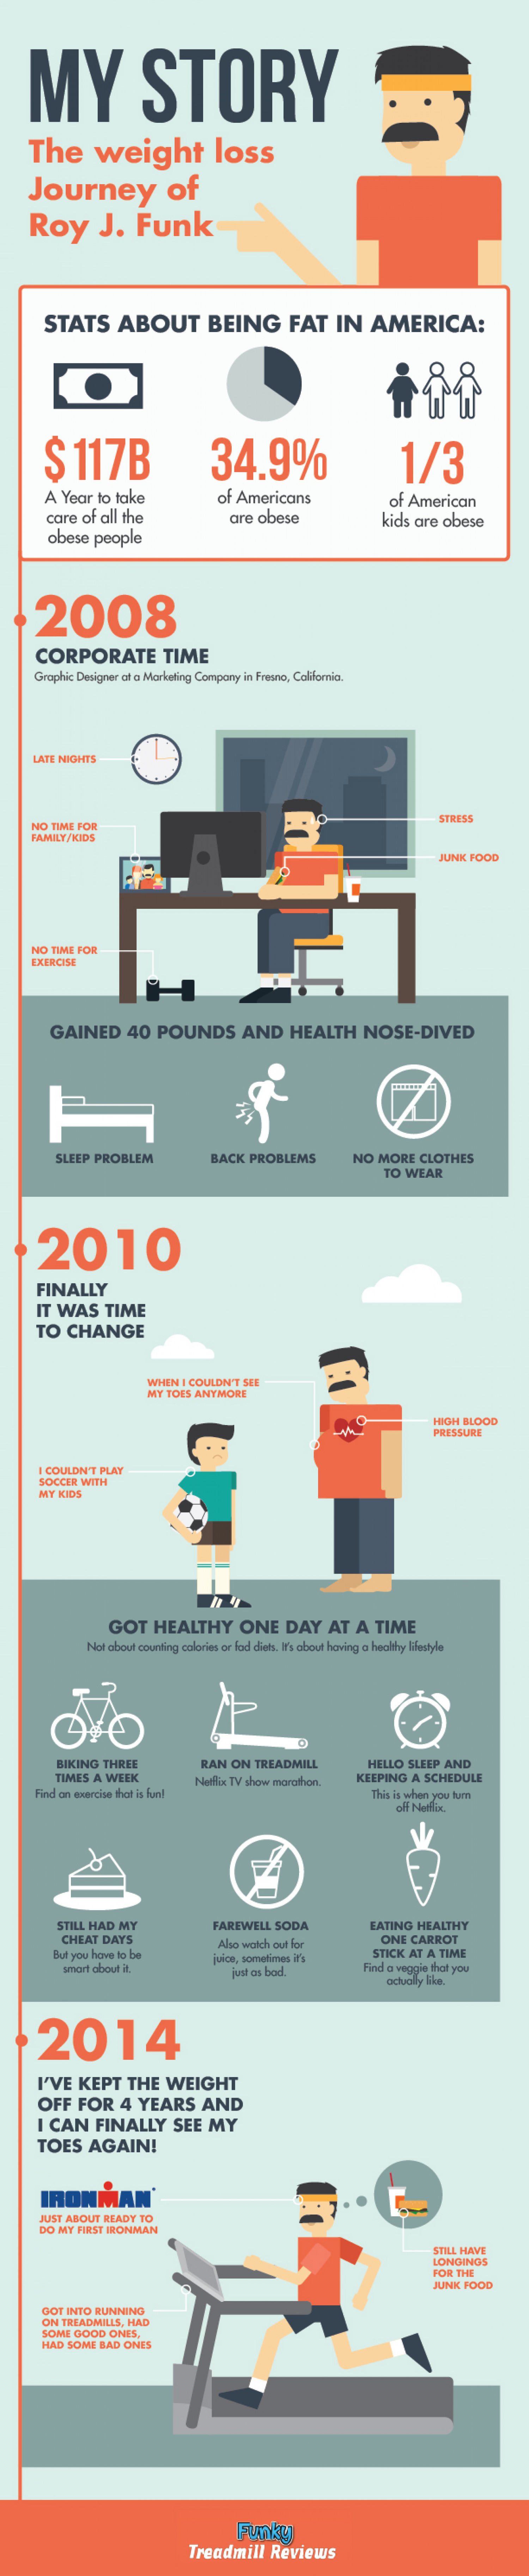 My Story: The Weight Loss Journey of Roy J. Funk Infographic